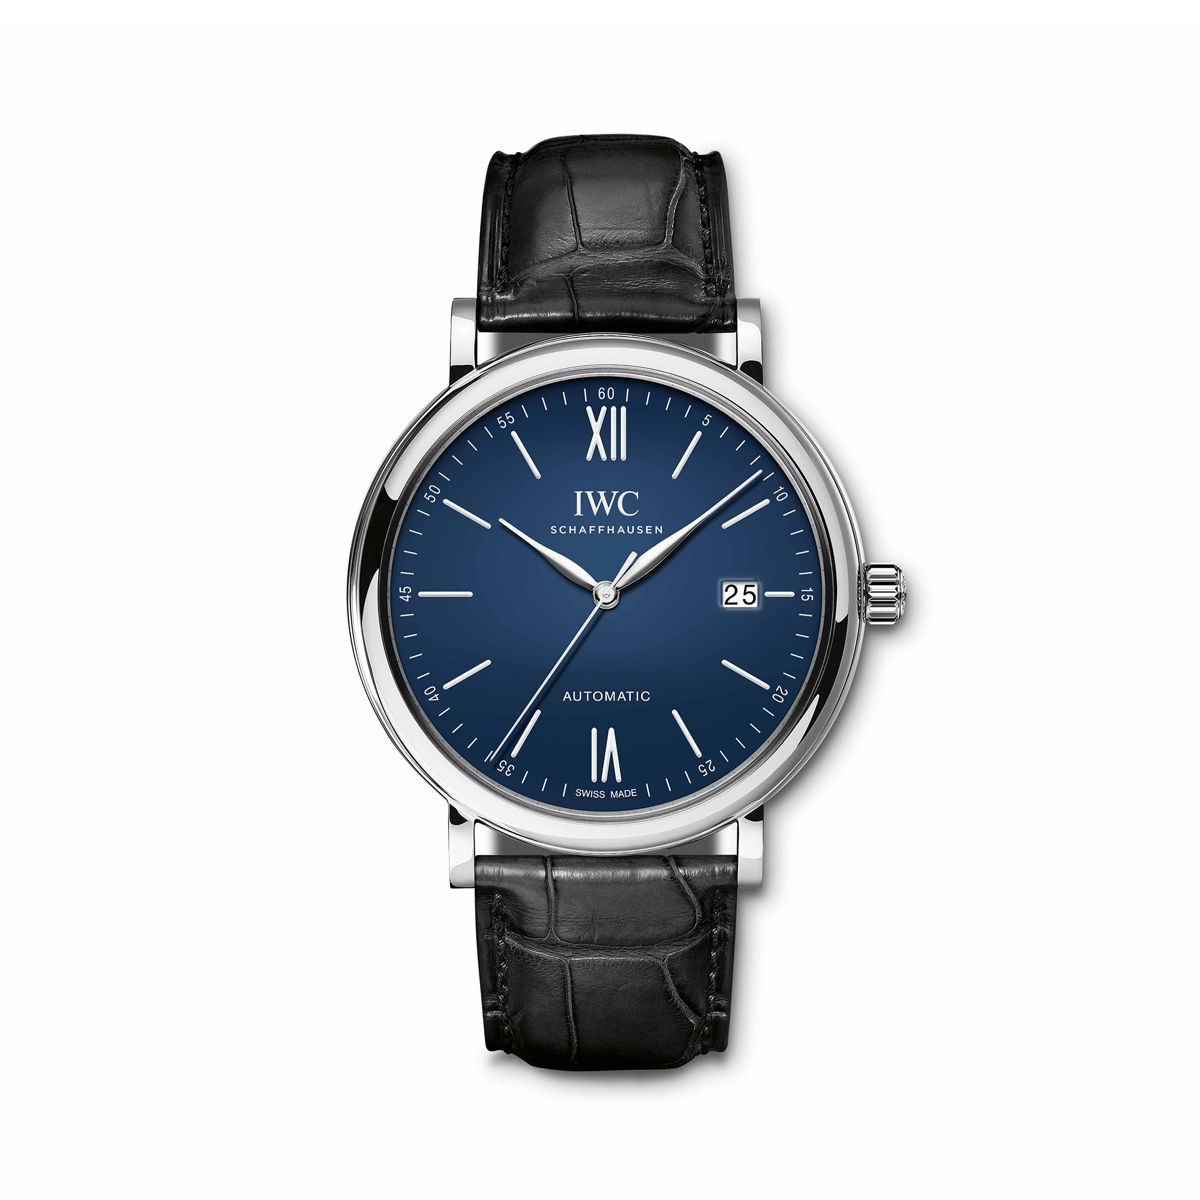 IWC Portofino Automatic Edition 150 Years IW356518 Replica